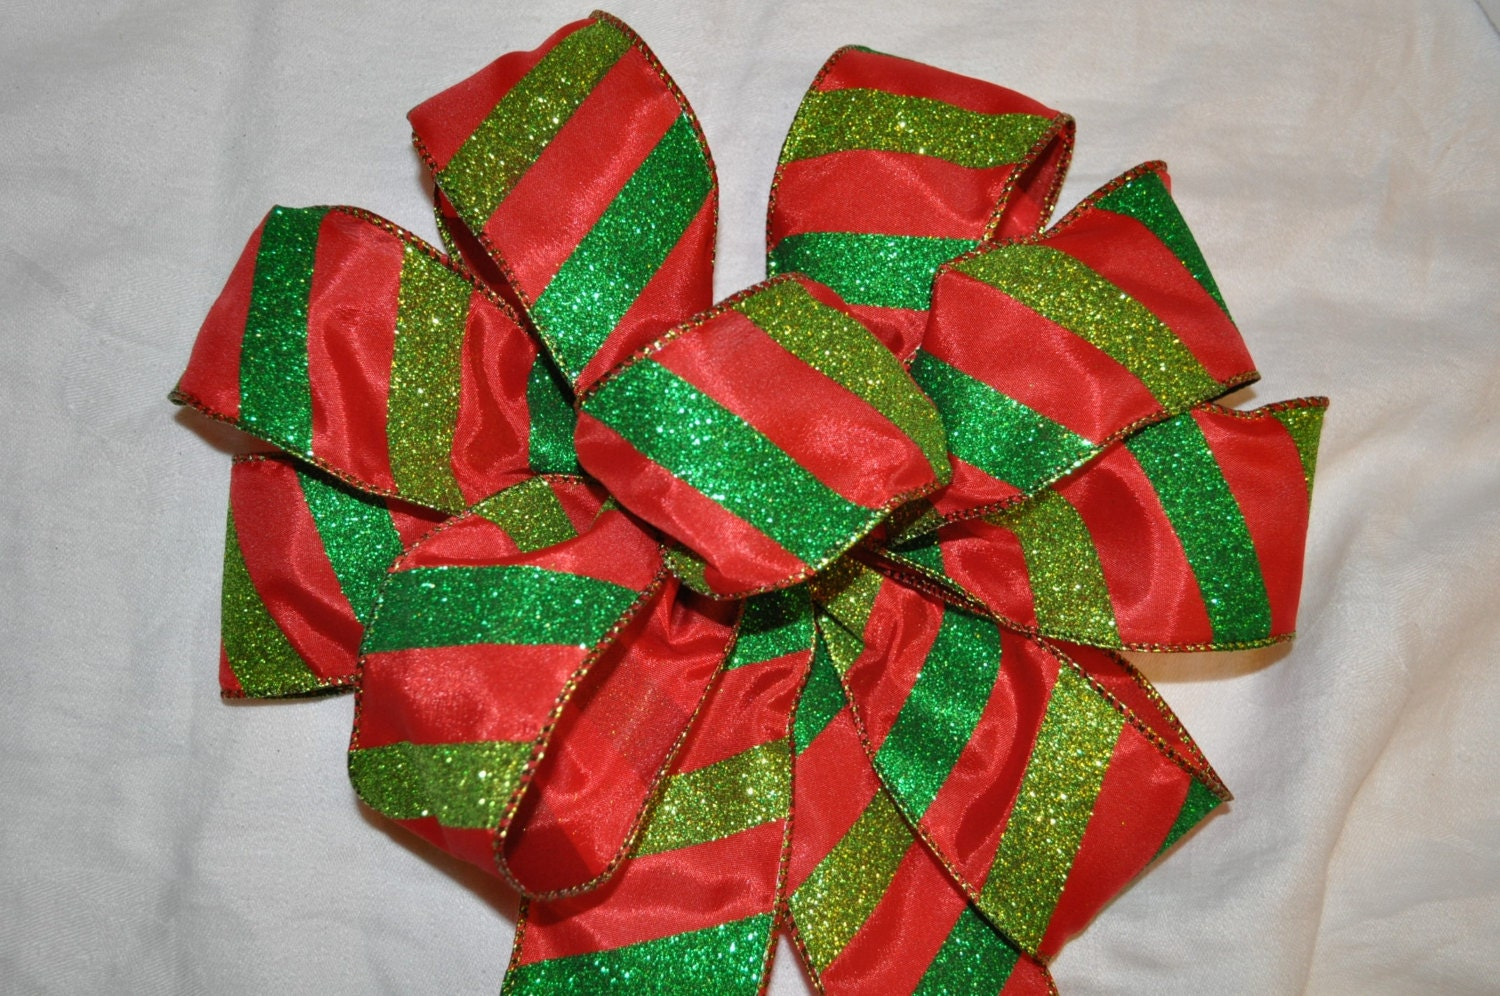 Red, Kelly Green, & Lime Green Striped Christmas Bow for Wreaths, Swags, Staircase, Fireplace, Home Decor, etc.